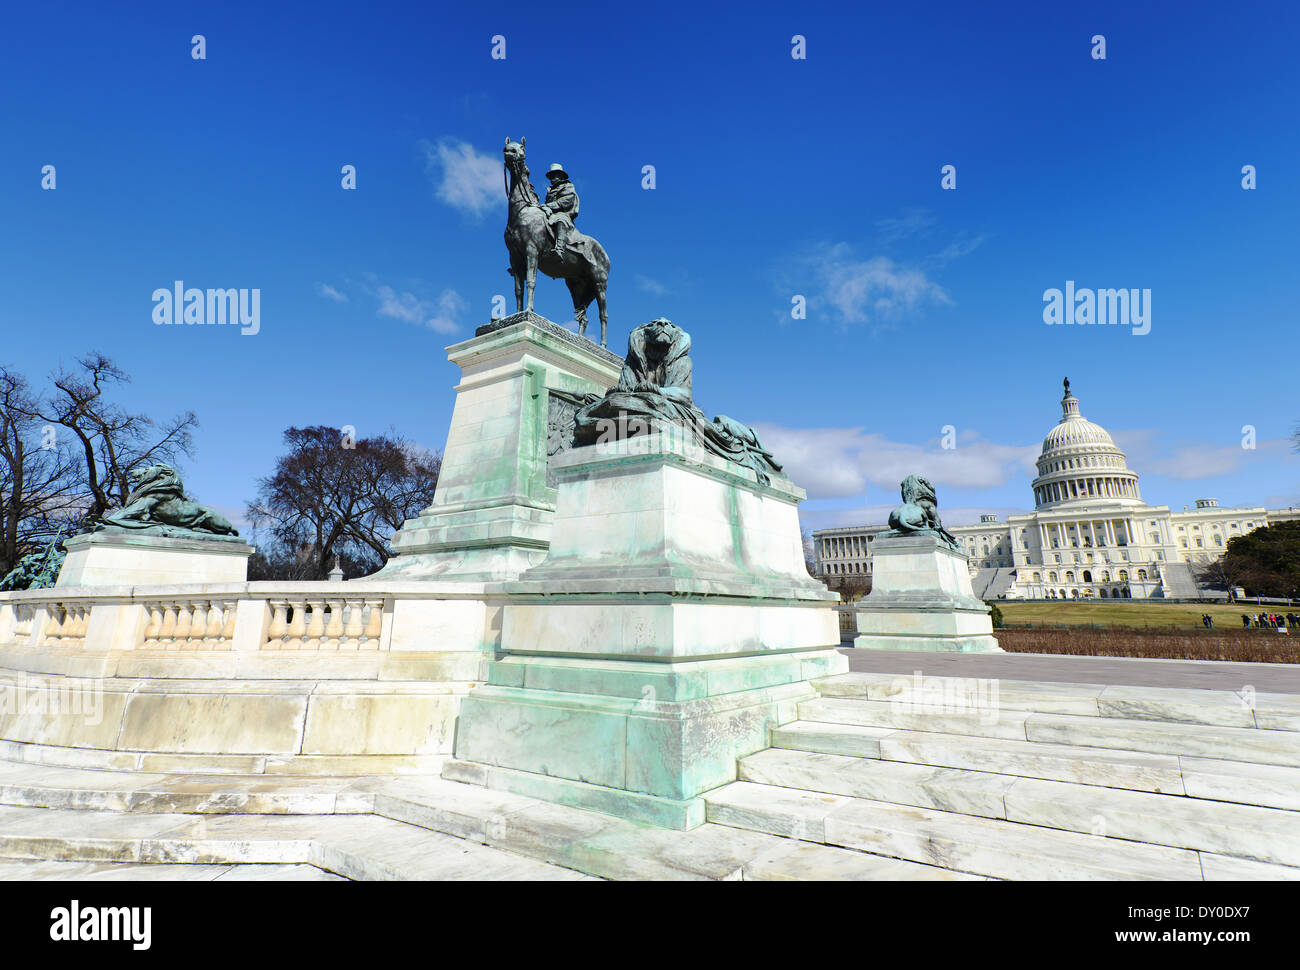 Grant Ulysses S, Memorial west of the U.S. Capitol in Washington, D.C. - Stock Image